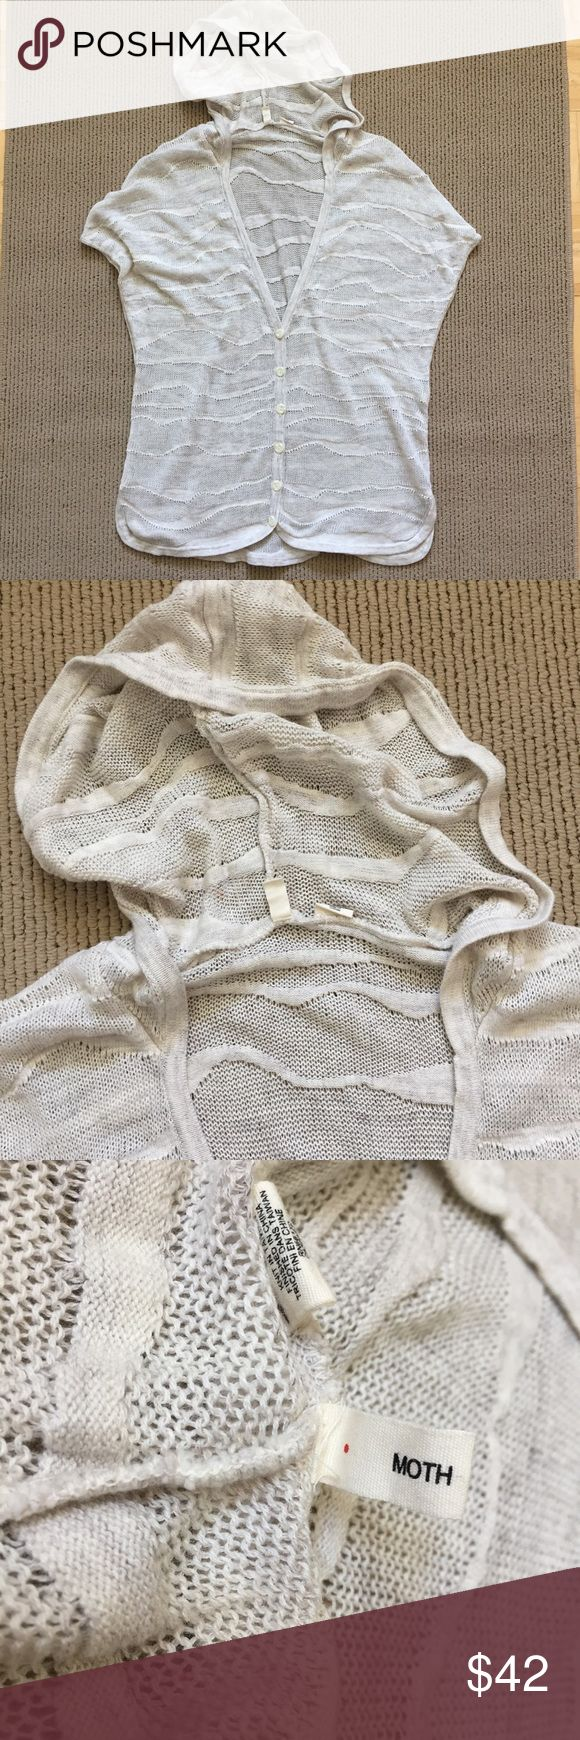 """Anthropologie Moth Sweater Hooded Cardigan Amazing soft and lightweight hoodie sweater. Deep V neck, buttons, and dolman style short sleeves with deep armpits. Looks awesome as a swimsuit cover-up or with your favorite cut-offs! Marled cream & beige.▪️size Small, runs big with lots of stretch ▪️100% cotton ▪️28"""" shoulder to hem. In great condition! For reference I'm 5'3"""" 115 lbs 34A Anthropologie Sweaters Cardigans"""